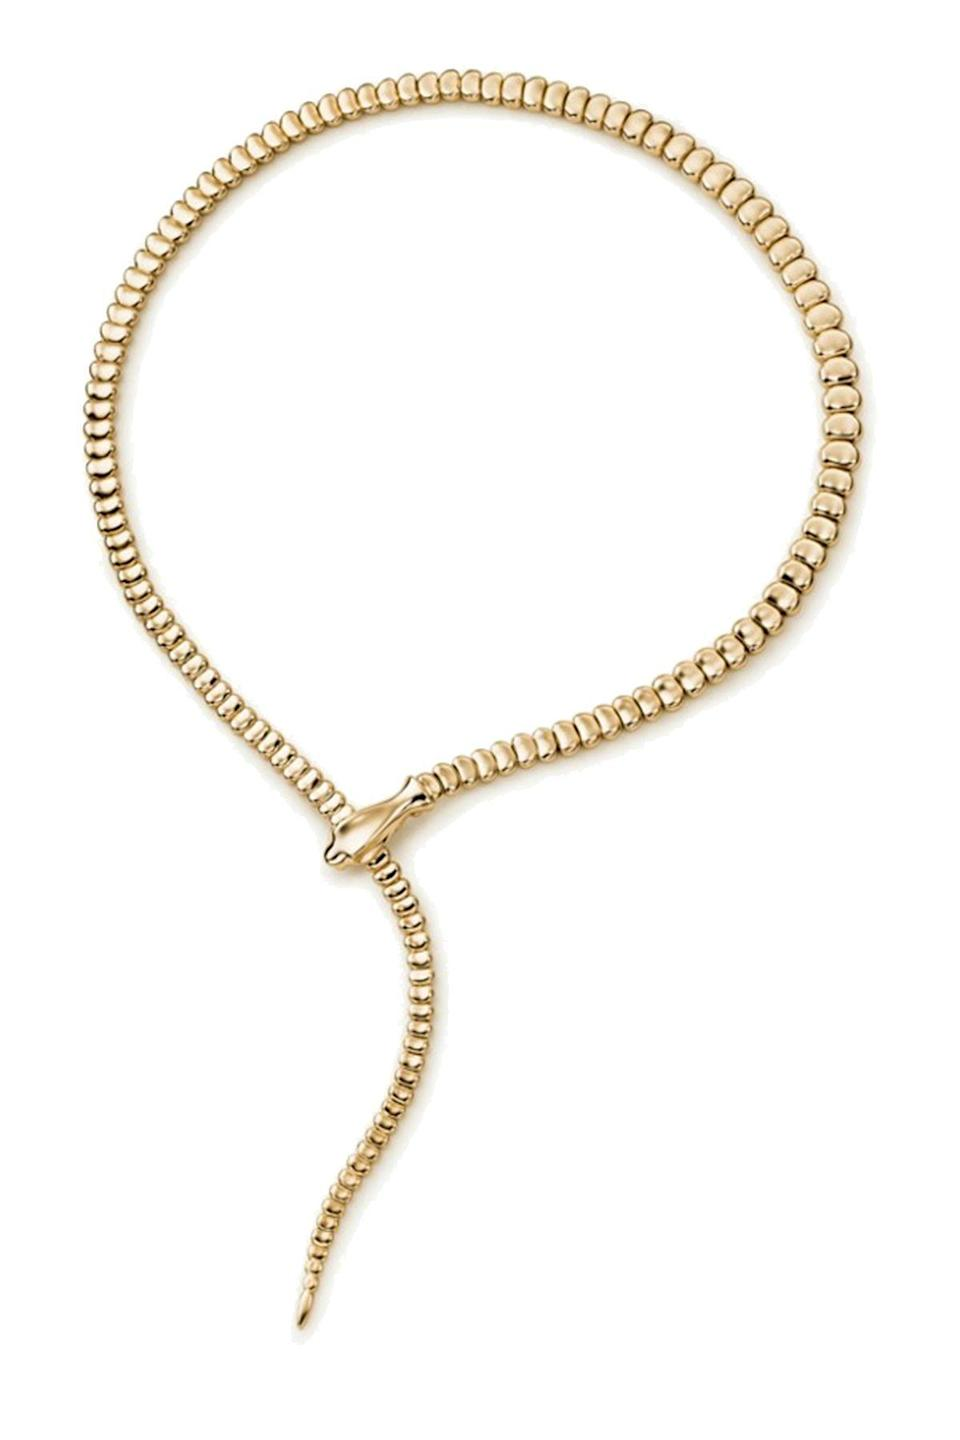 """<p><strong>Tiffany & Co.</strong></p><p>tiffany.com</p><p><strong>$15000.00</strong></p><p><a href=""""https://www.tiffany.com/jewelry/necklaces-pendants/elsa-peretti-snake-necklace-11951929/?omcid=ppc_google_PLA+-+New+-+BR+-+Necklace+-+US+-+Top+Markets&mkwid=slTrwPzGA%7Cpcrid%7C448990288708%7Cpkw%7C%7Cpmt%7C%7Cpdv%7Cc%7Cmtid%7C744dpc50313%7Cslid%7C%7Cproductid%7C60116249%7Ctargetids%7Caud-936063834431%3Apla-927874871227%7Cgroupid%7C105781806873%7C&gclid=CjwKCAjwqIiFBhAHEiwANg9szhEzqTpIJTf-DBBovX36gWNpQzdtMzFi_-KkqWtezyUfIrYtt97W1hoCVPAQAvD_BwE&gclsrc=aw.ds"""" rel=""""nofollow noopener"""" target=""""_blank"""" data-ylk=""""slk:Shop Now"""" class=""""link rapid-noclick-resp"""">Shop Now</a></p><p>Even the most extreme jewelry neophyte knows of the legend that was Elsa Peretti (she died <a href=""""https://www.townandcountrymag.com/style/jewelry-and-watches/a7294/tiffanys-elsa-peretti-interview/"""" rel=""""nofollow noopener"""" target=""""_blank"""" data-ylk=""""slk:earlier this year"""" class=""""link rapid-noclick-resp"""">earlier this year</a>). For more than 40 years at Tiffany & Co, she revolutionized the jewelry world, elevating sterling silver to a luxury material and creating such cult classics like the <a href=""""https://www.townandcountrymag.com/style/jewelry-and-watches/a32346710/elsa-peretti-bone-cuff-tiffany/"""" rel=""""nofollow noopener"""" target=""""_blank"""" data-ylk=""""slk:Bone cuff"""" class=""""link rapid-noclick-resp"""">Bone cuff</a>, the Bean pendant, and this Snake necklace.</p>"""